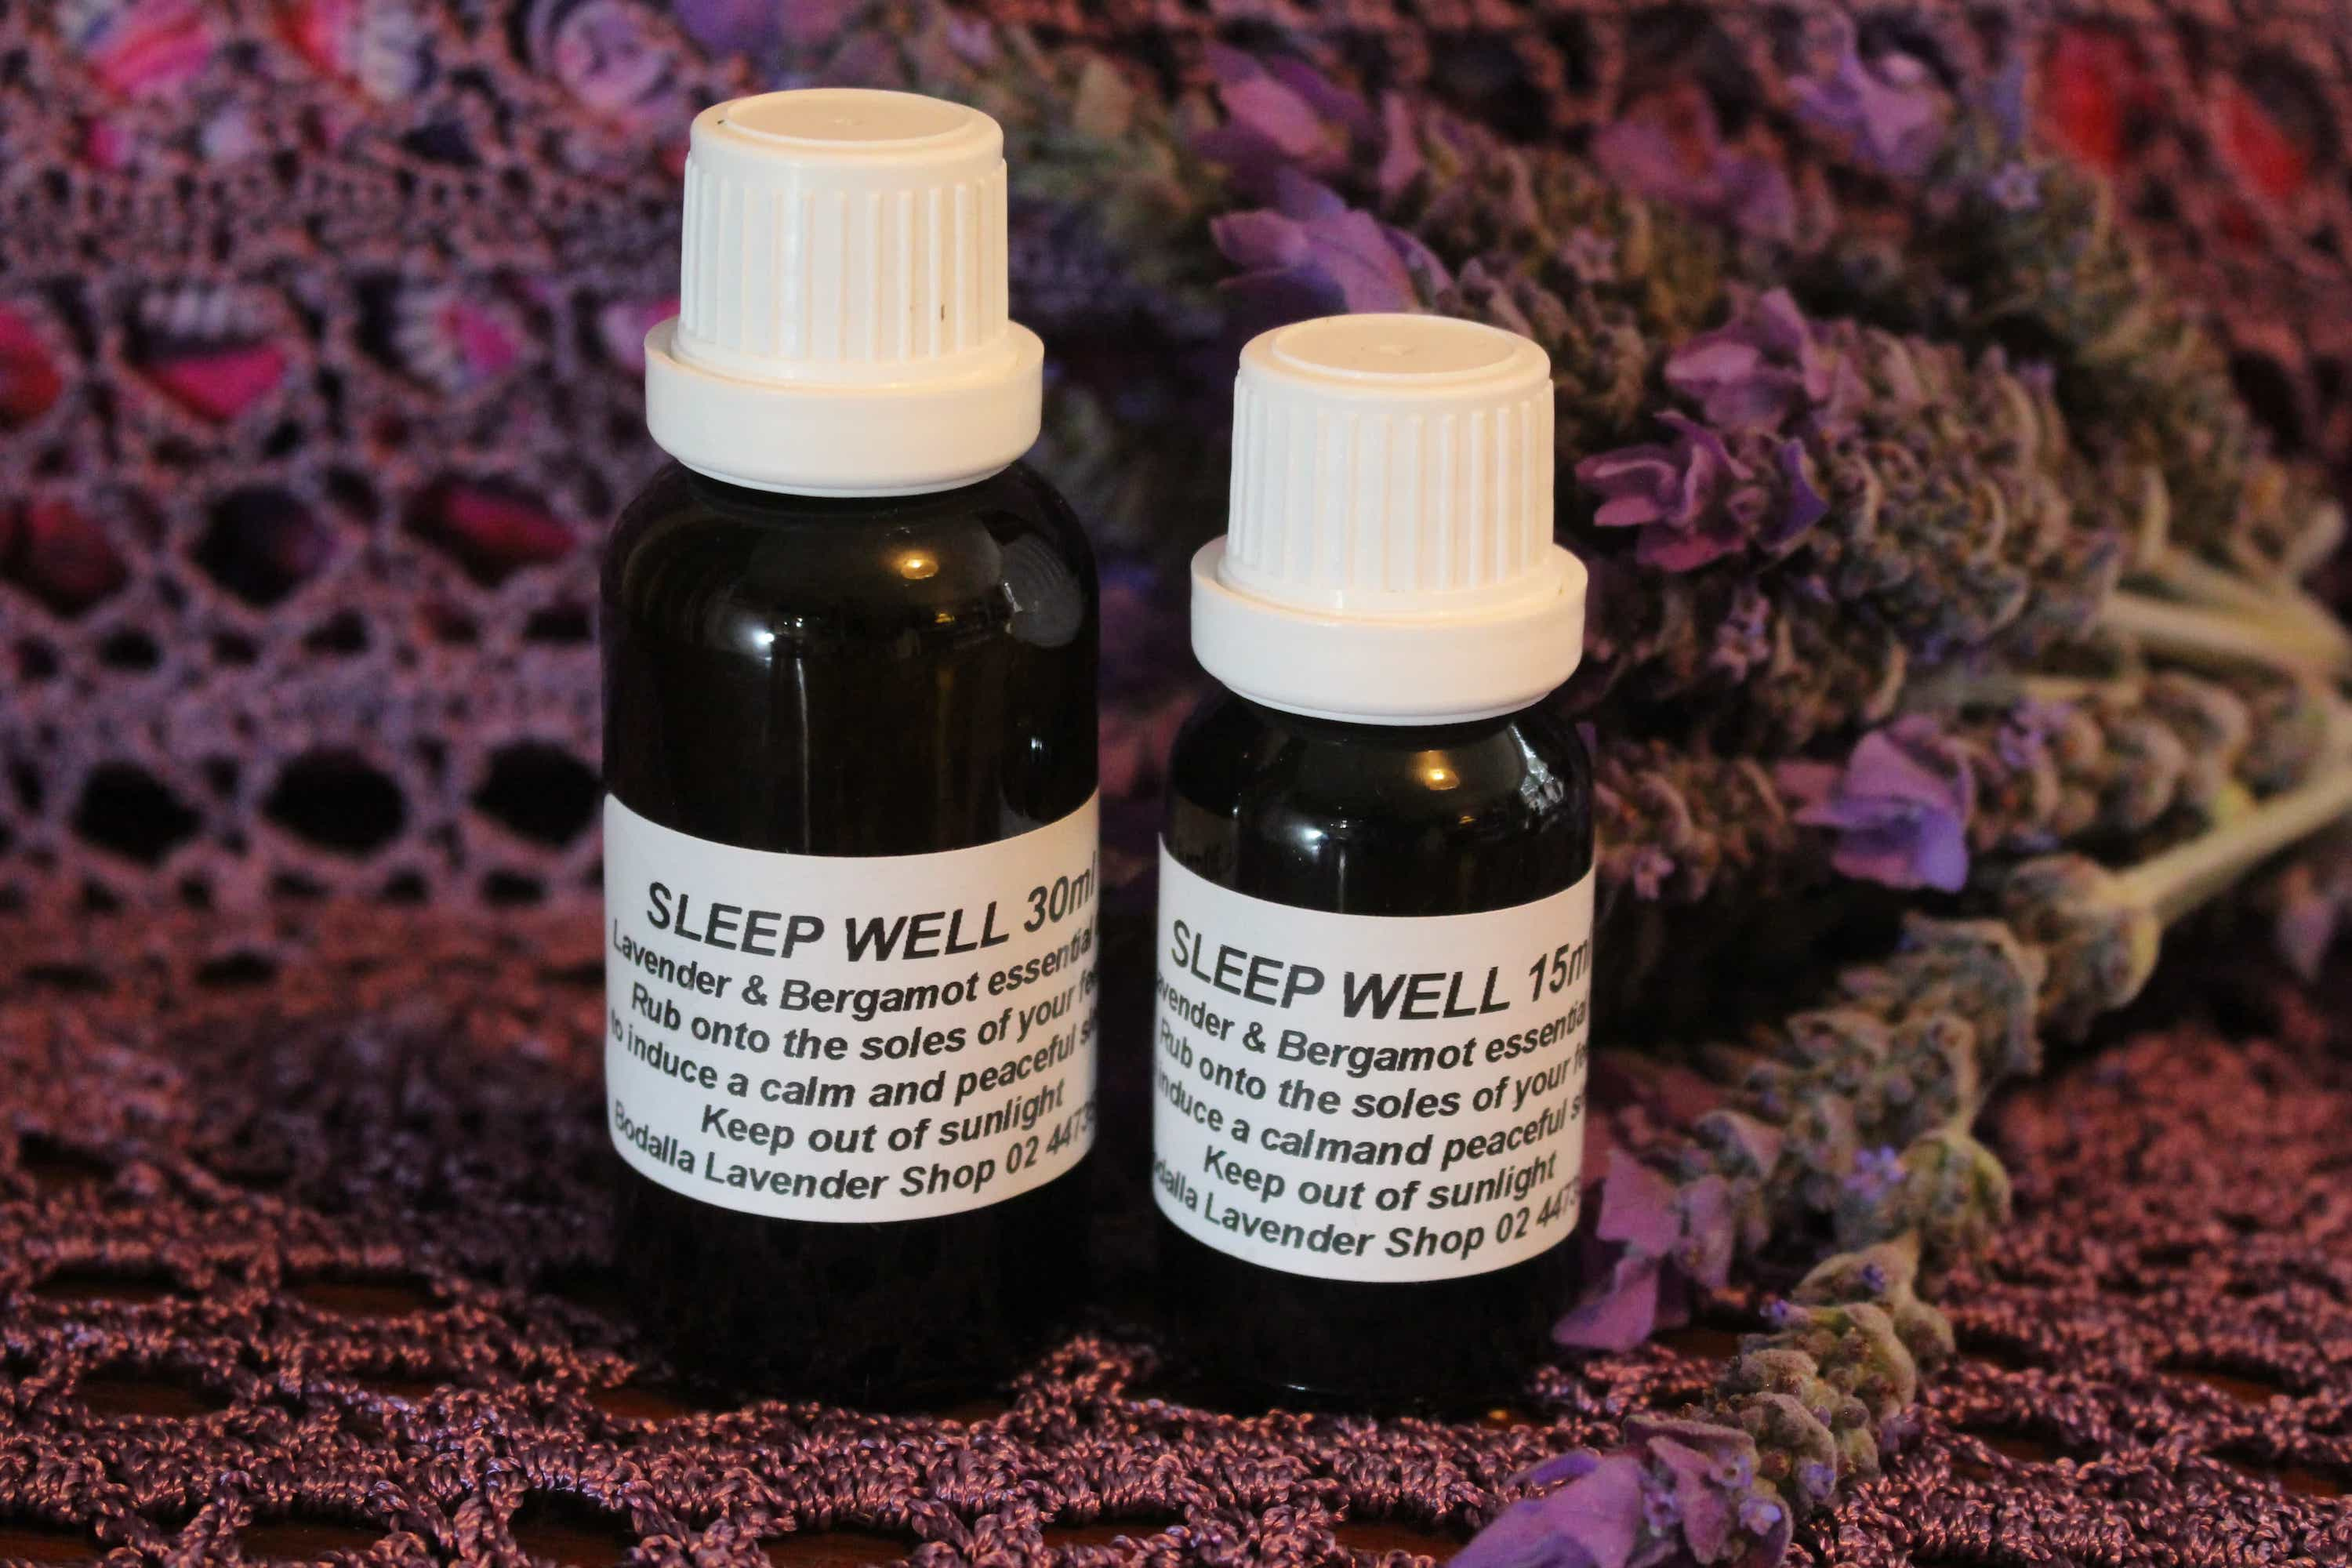 Photograph of Sleep Well Oil 15ml product